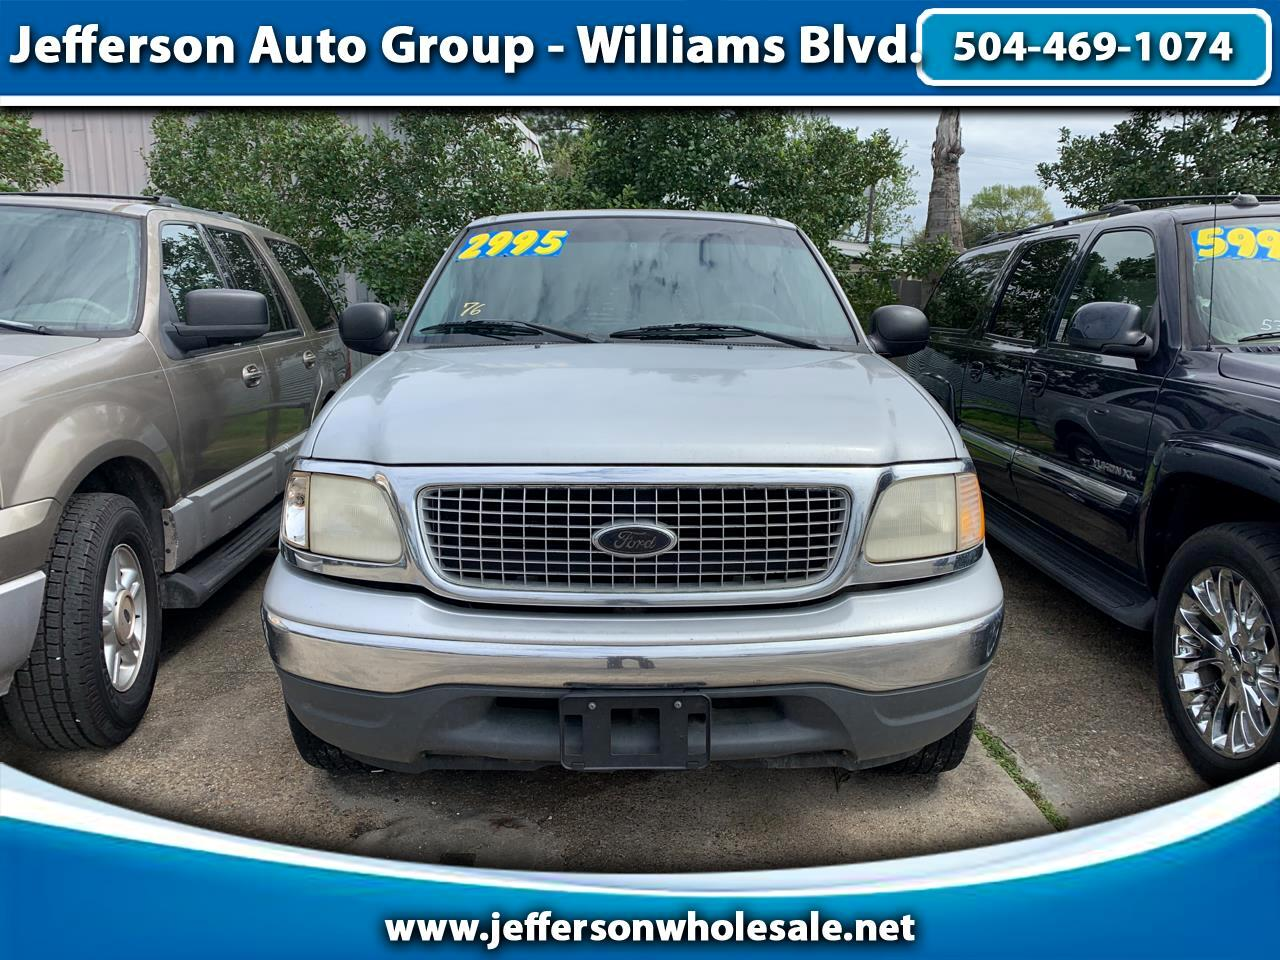 2001 Ford Expedition 119